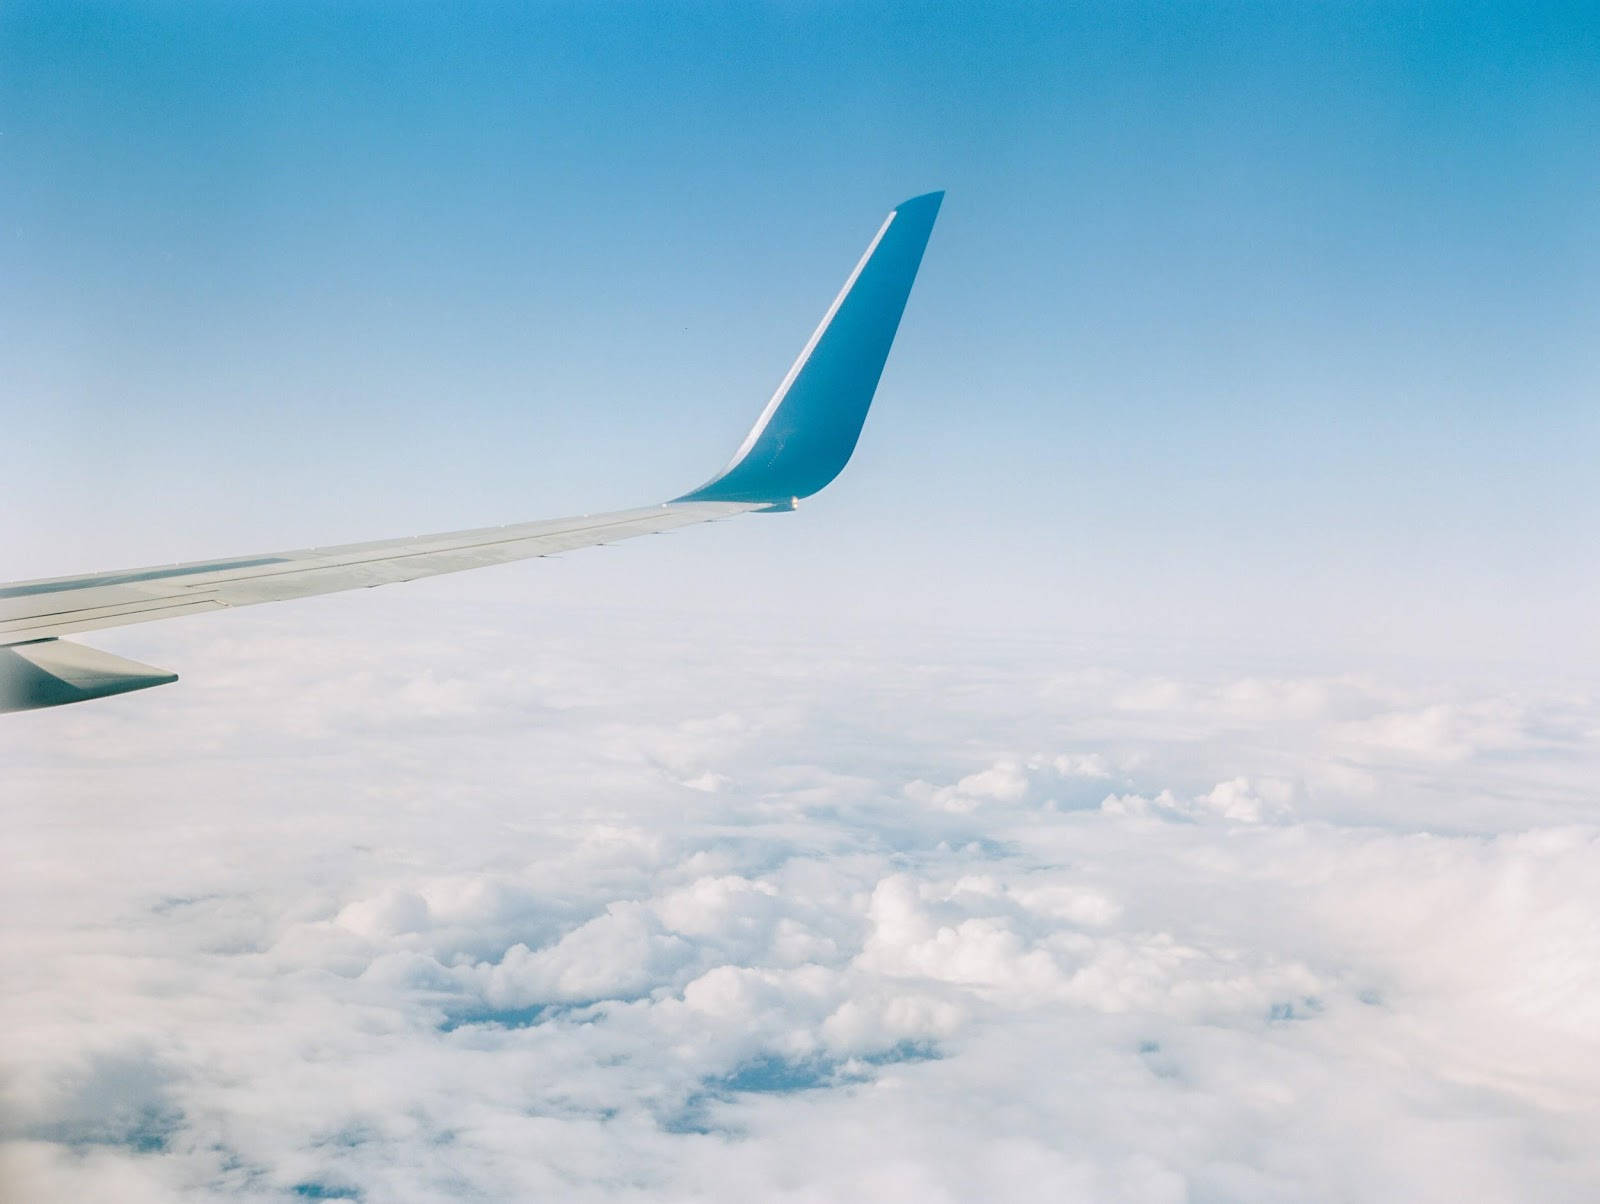 An airplane wing in the clear blue sky surrounded by fluffy white clouds